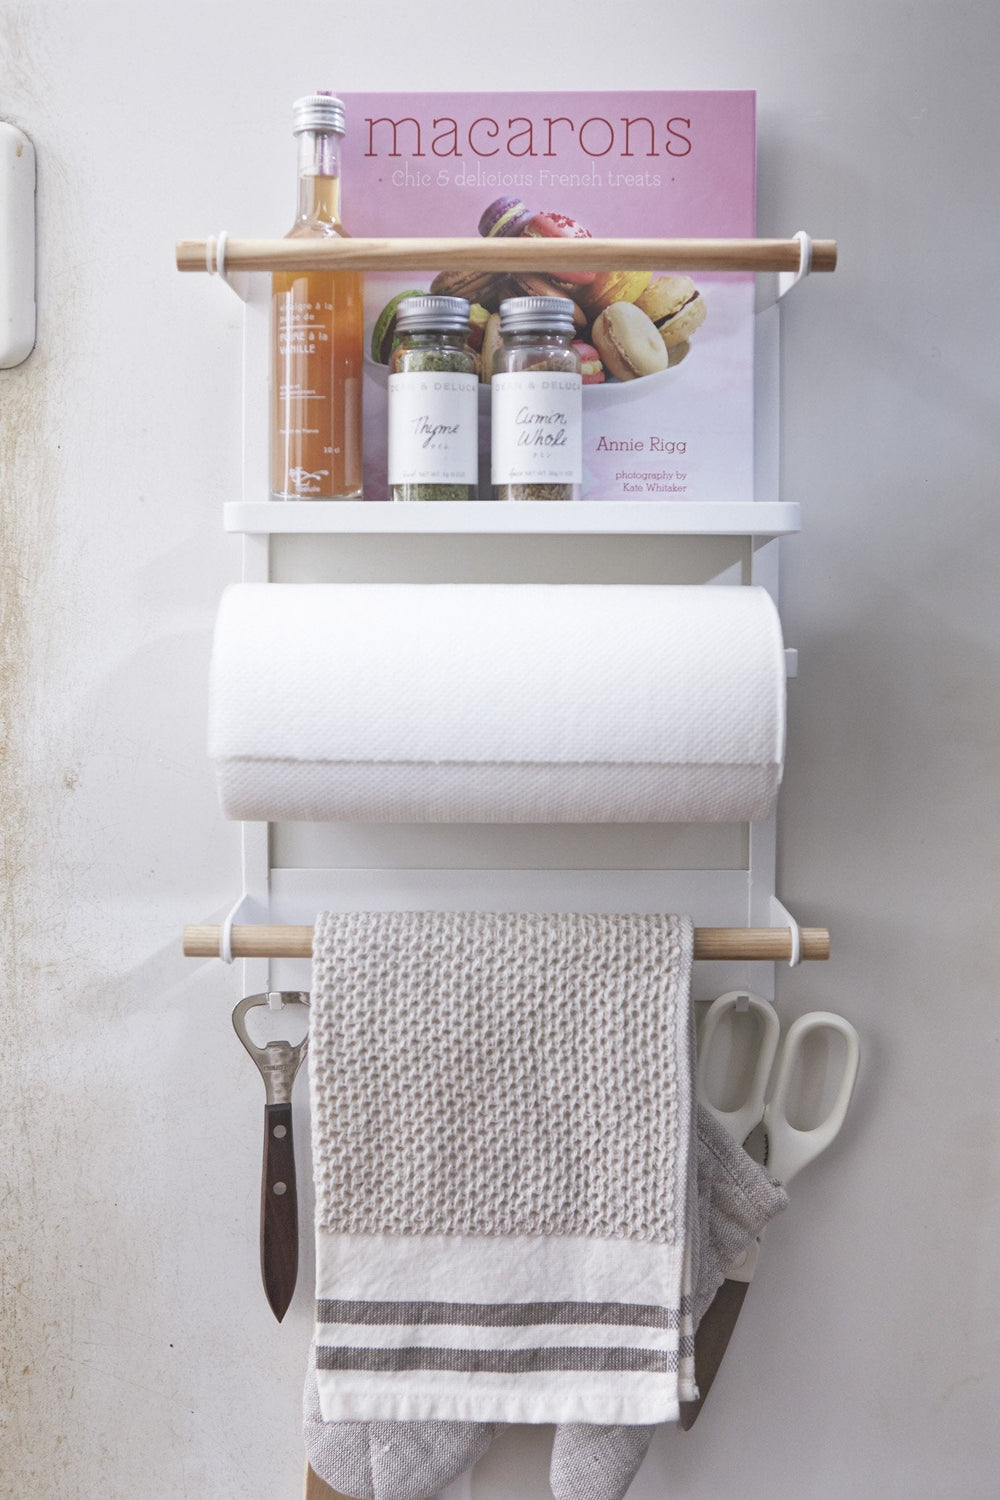 Yamazaki's white magnetic organizing rack holding kitchen and cooking supplies on the fridge.